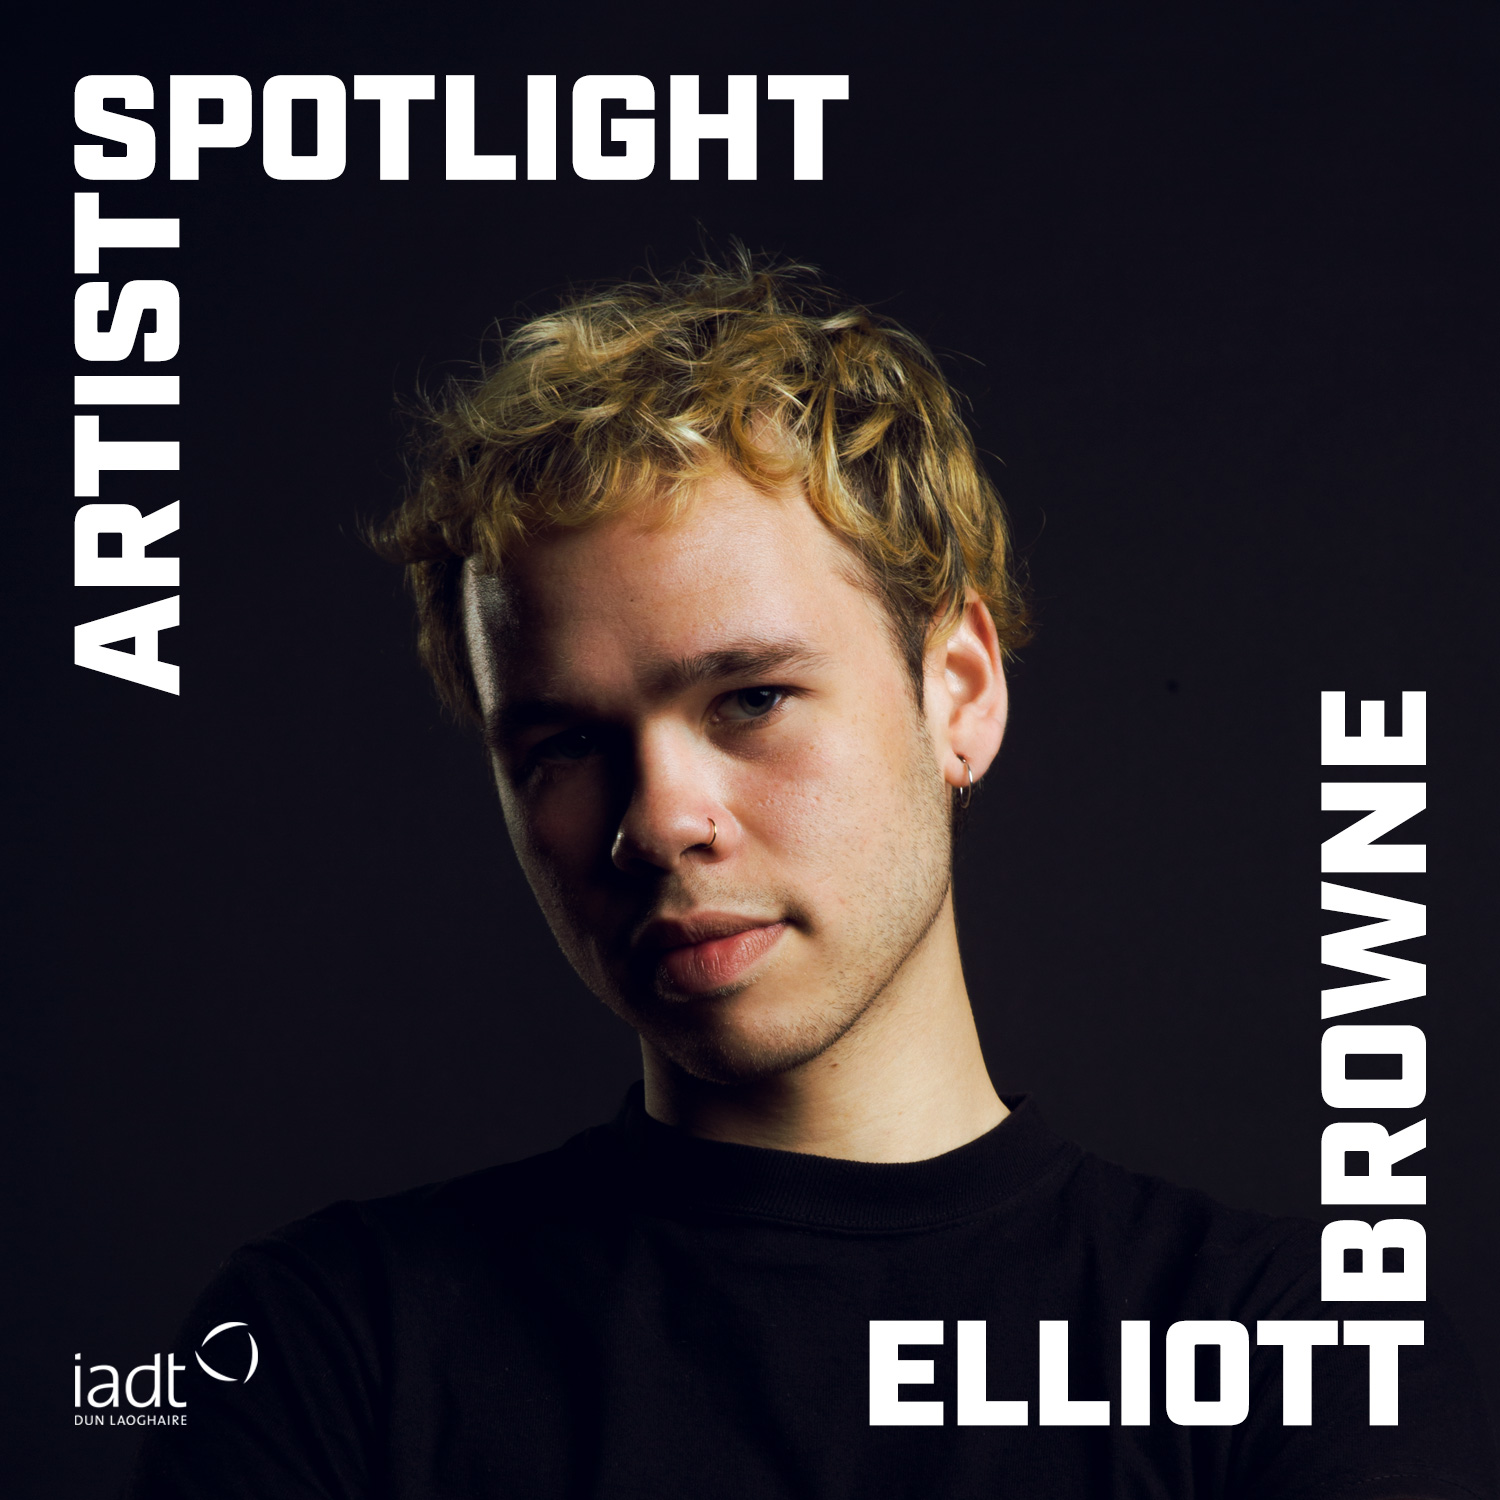 elliott-browne-artist-spotlight